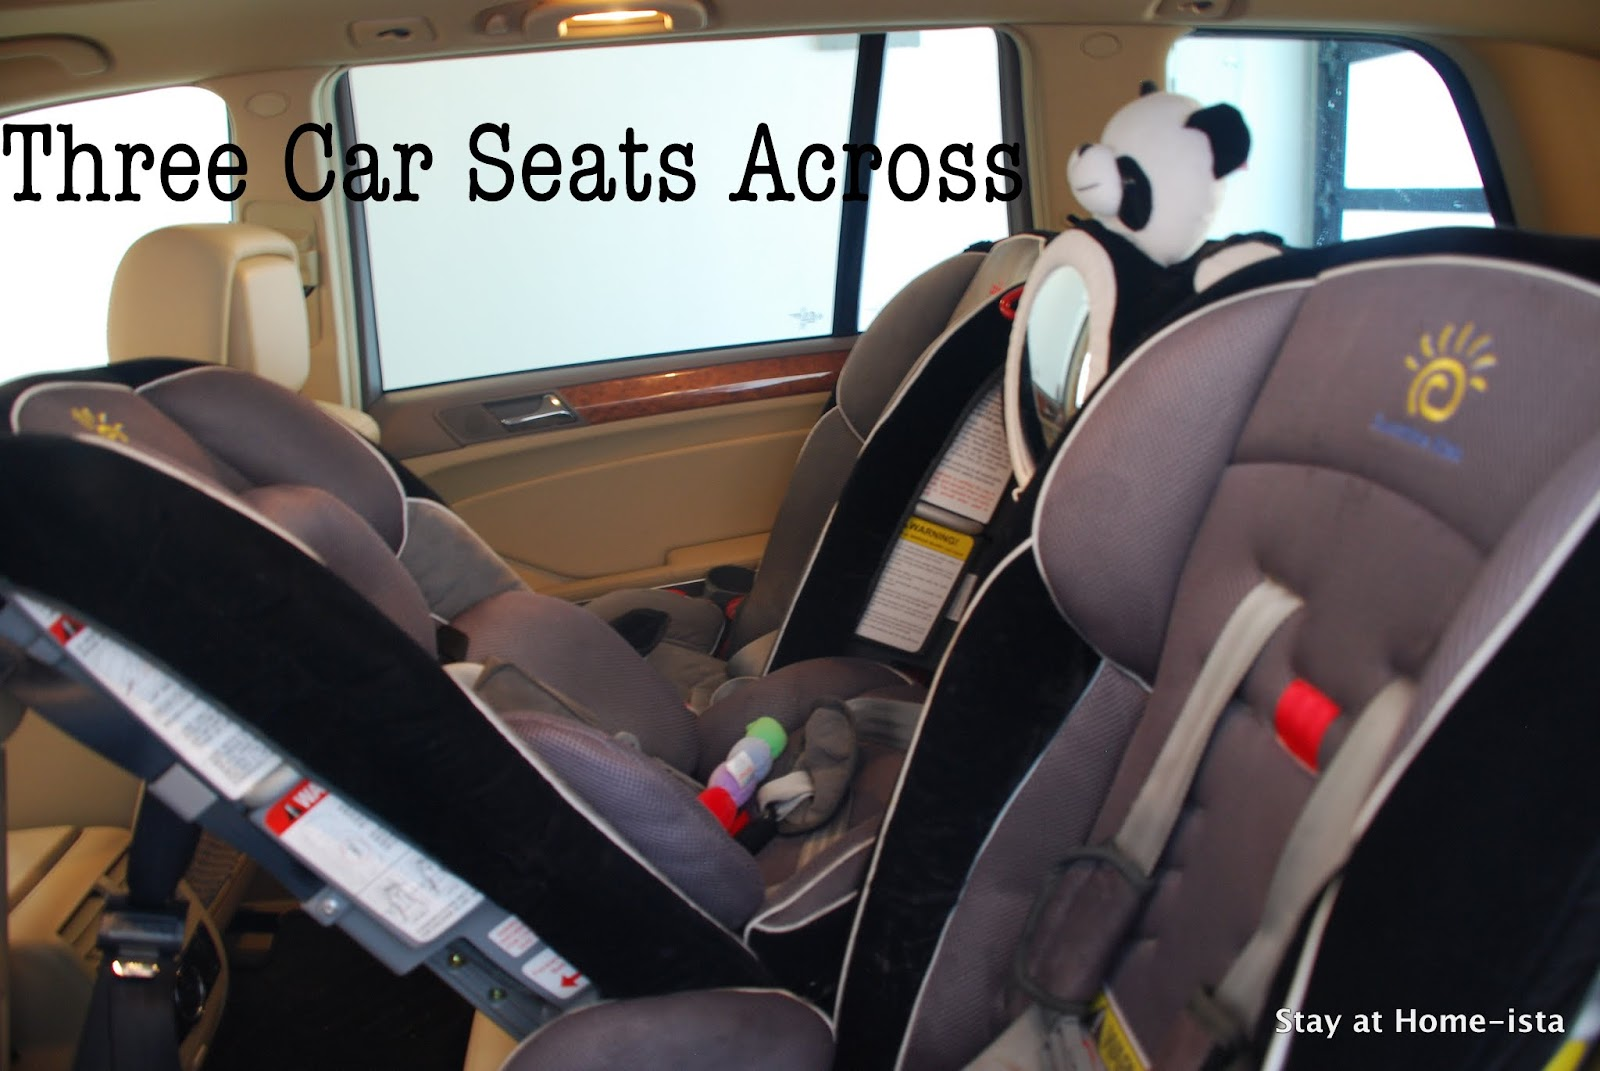 Stay at Home-ista: The Best Car Seats for our three kid family